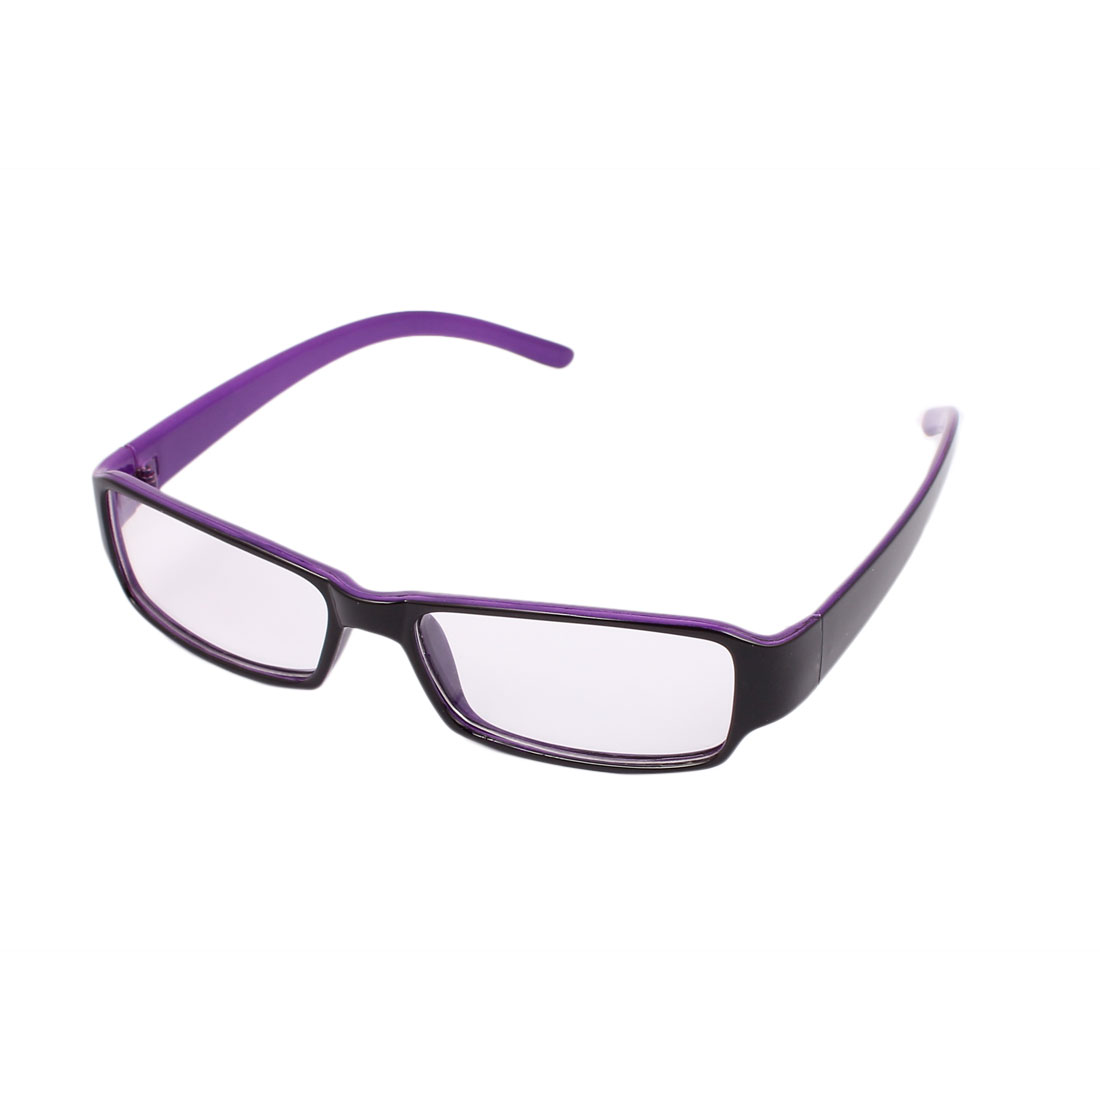 Women Plastic Full Frame Eyewear Spectacles Optical Plain Glasses Black Purple